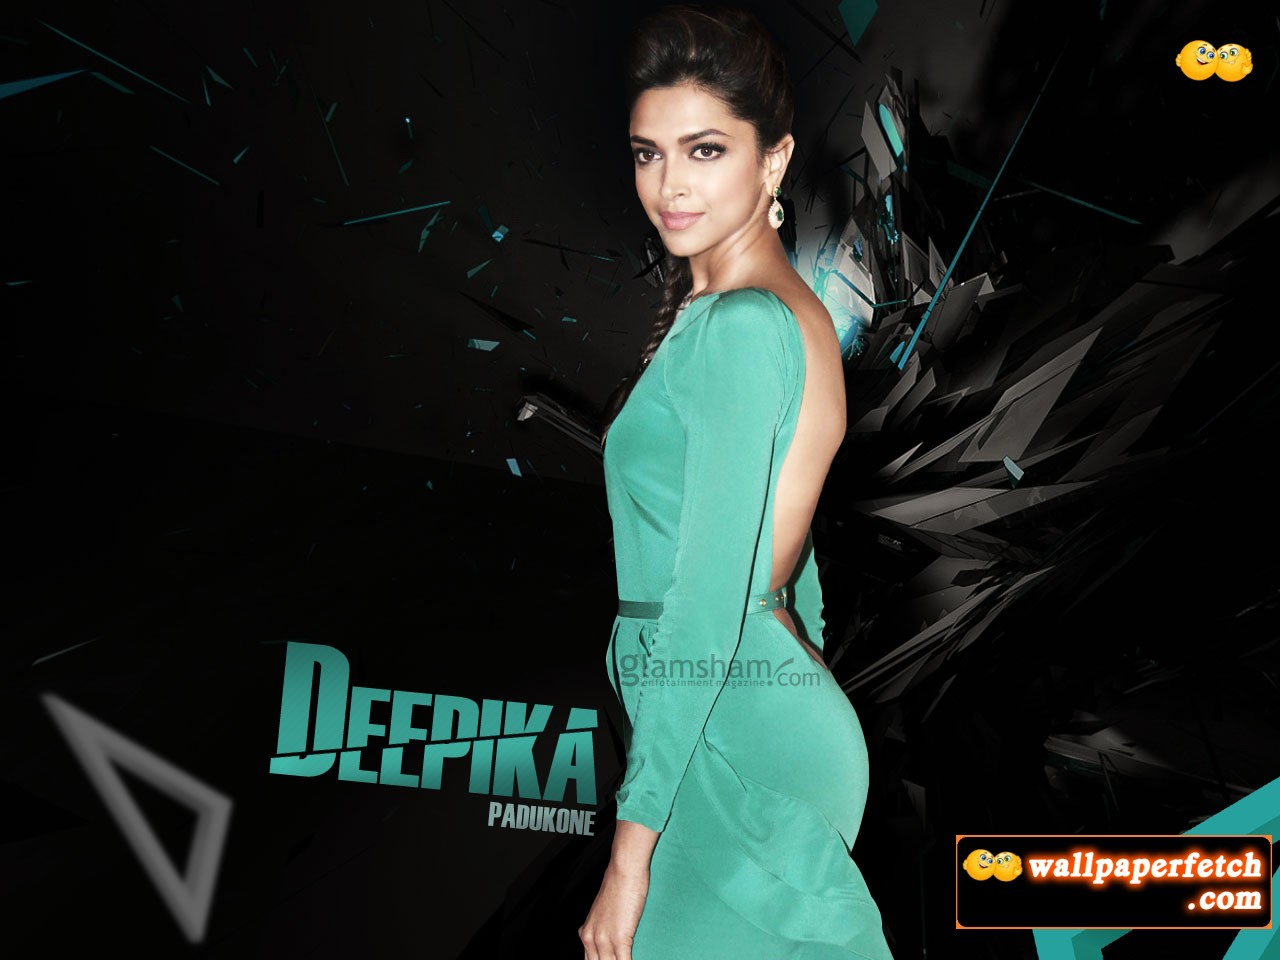 Deepika Padukone Wallapapers Collection: Wallpaper Fetch: Deepika Padukone Wallpapers 2012